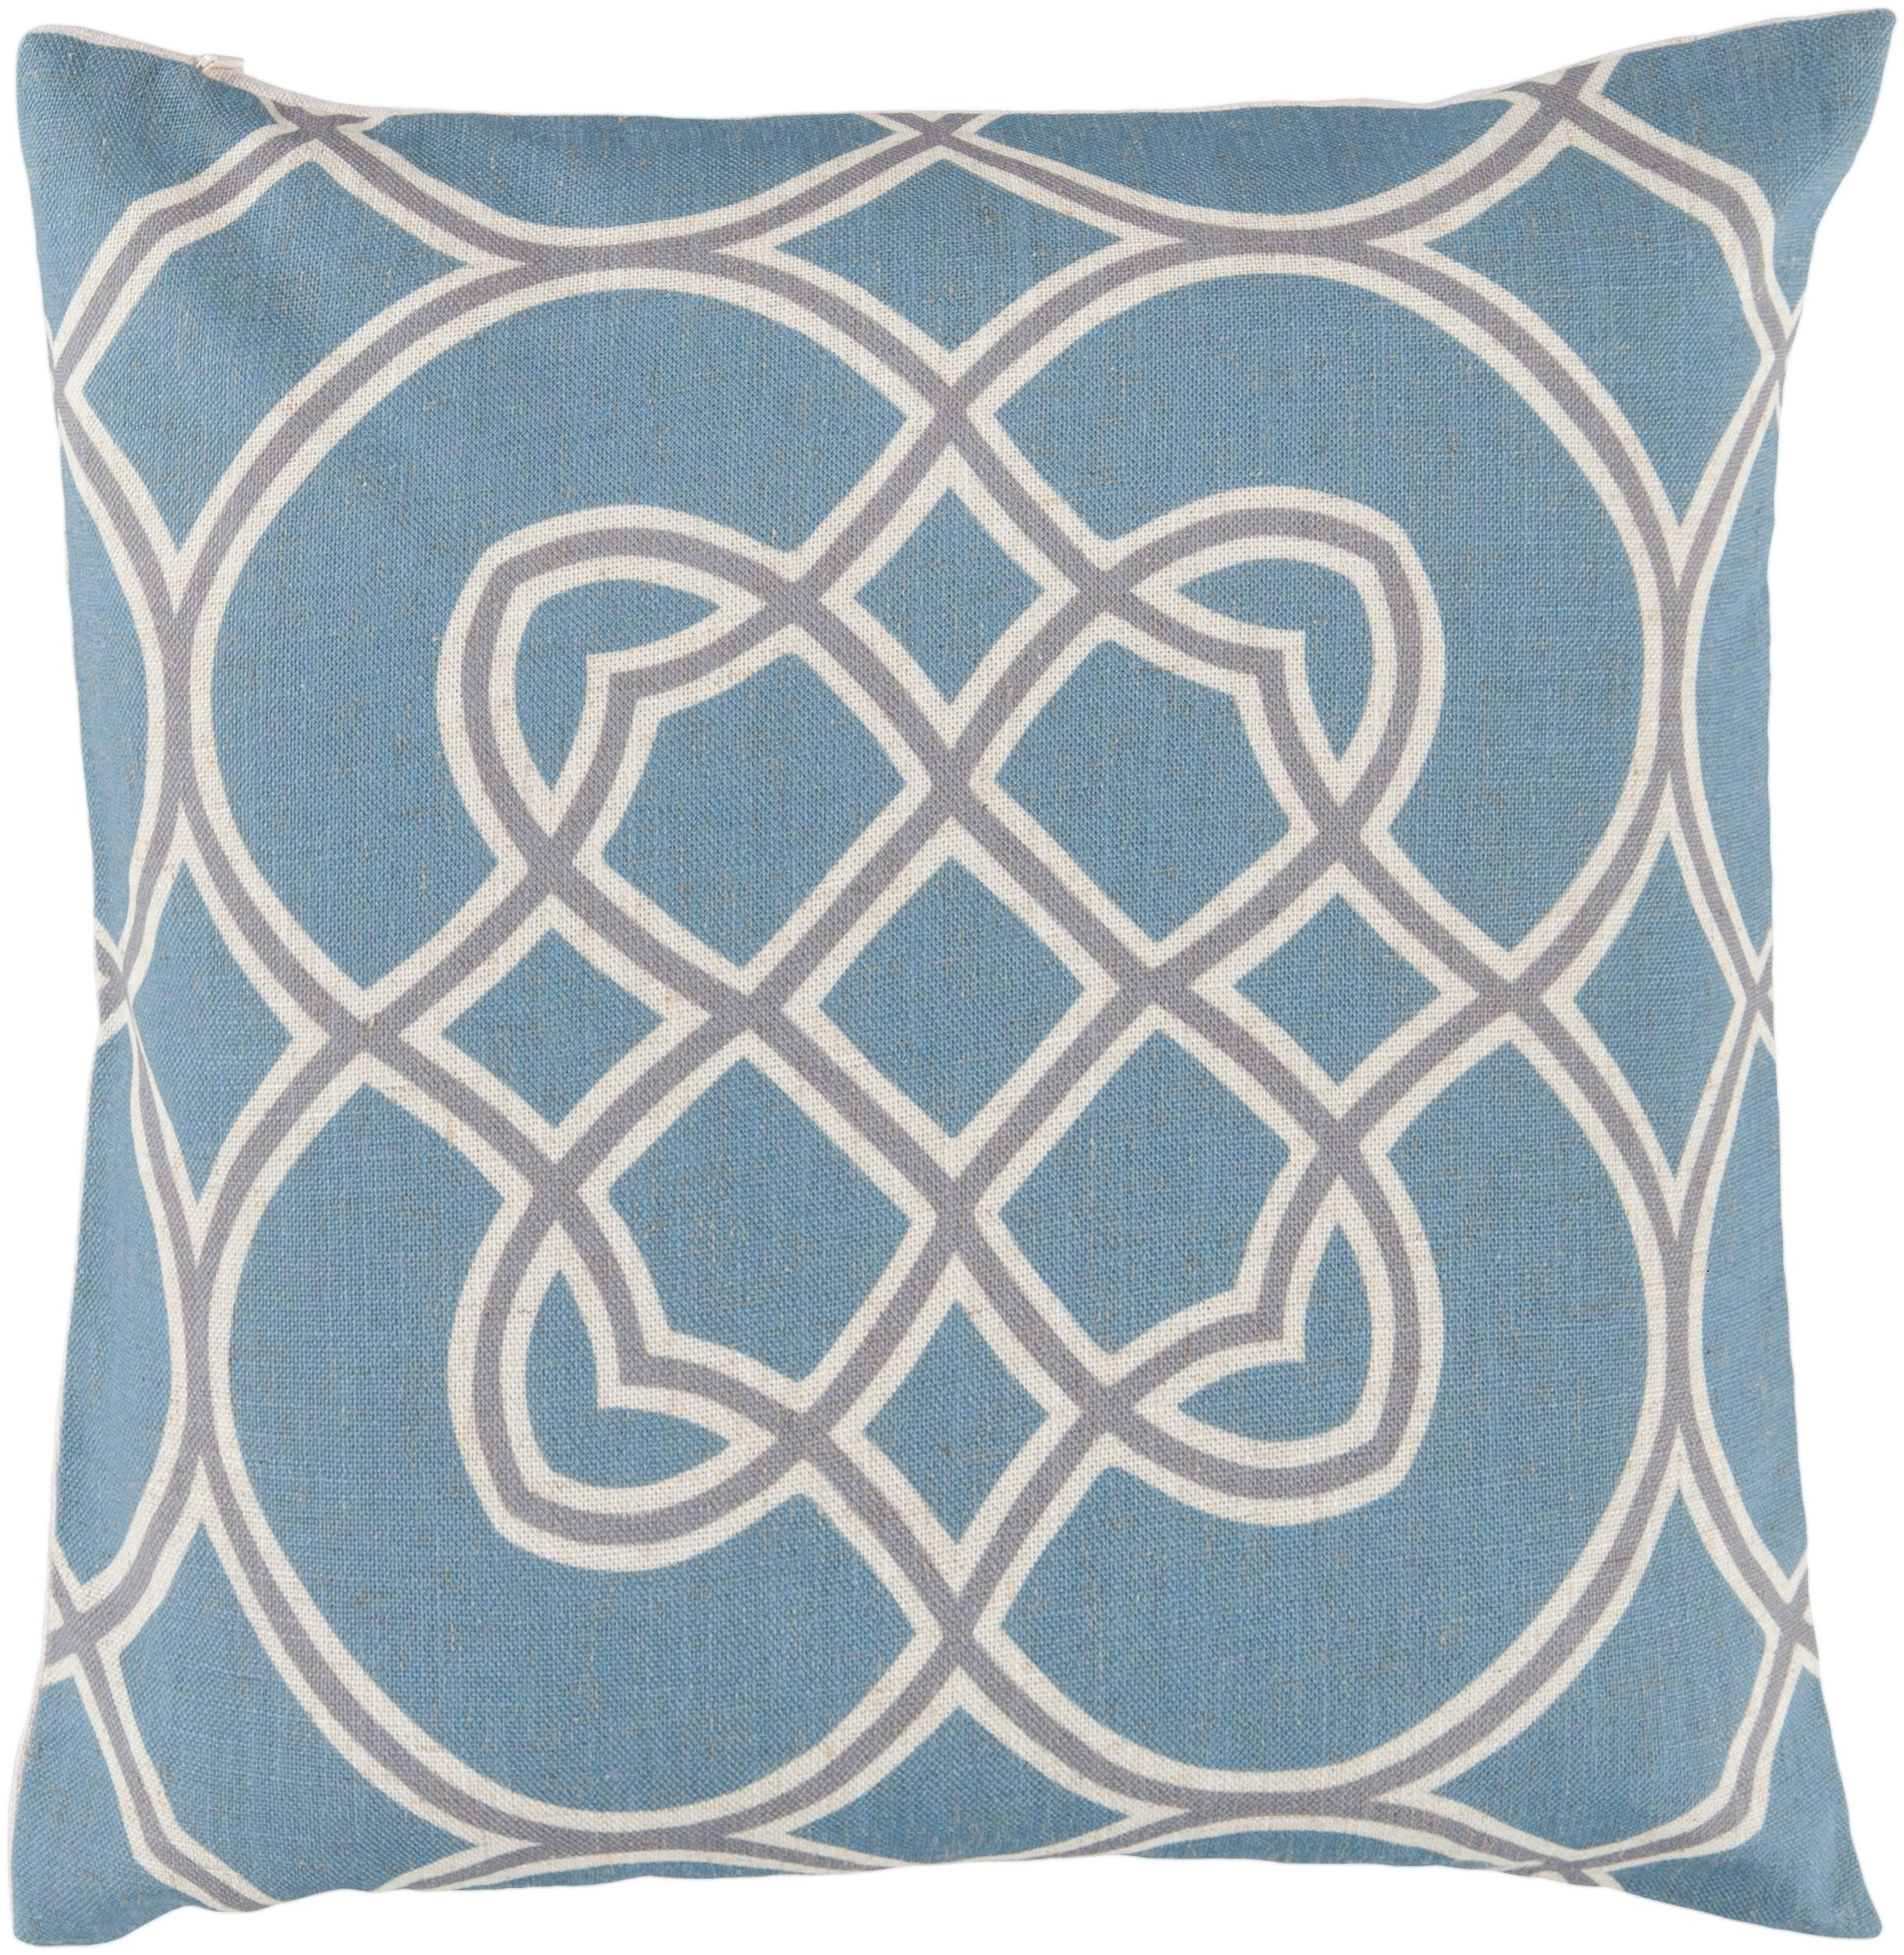 "Surya Pillows 18"" x 18"" Pillow - Item Number: FF005-1818P"